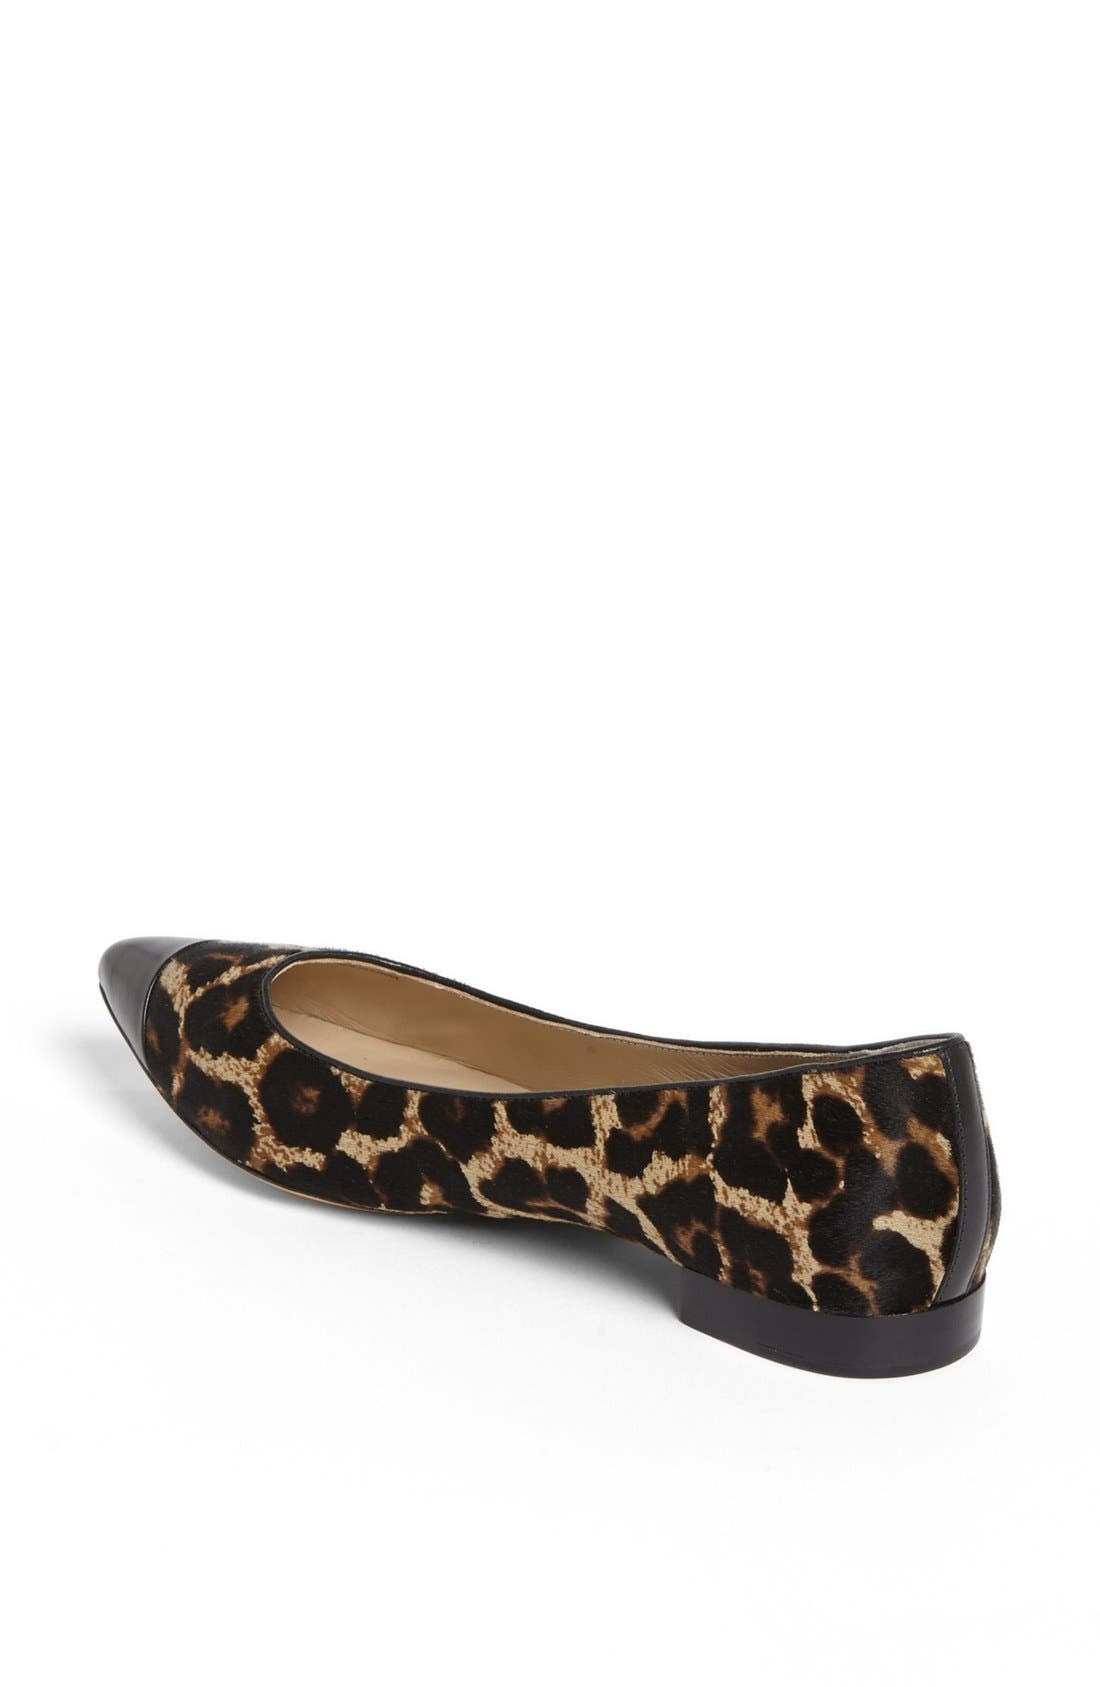 Alternate Image 2  - Michael Kors 'Janae' Calf Hair Flat